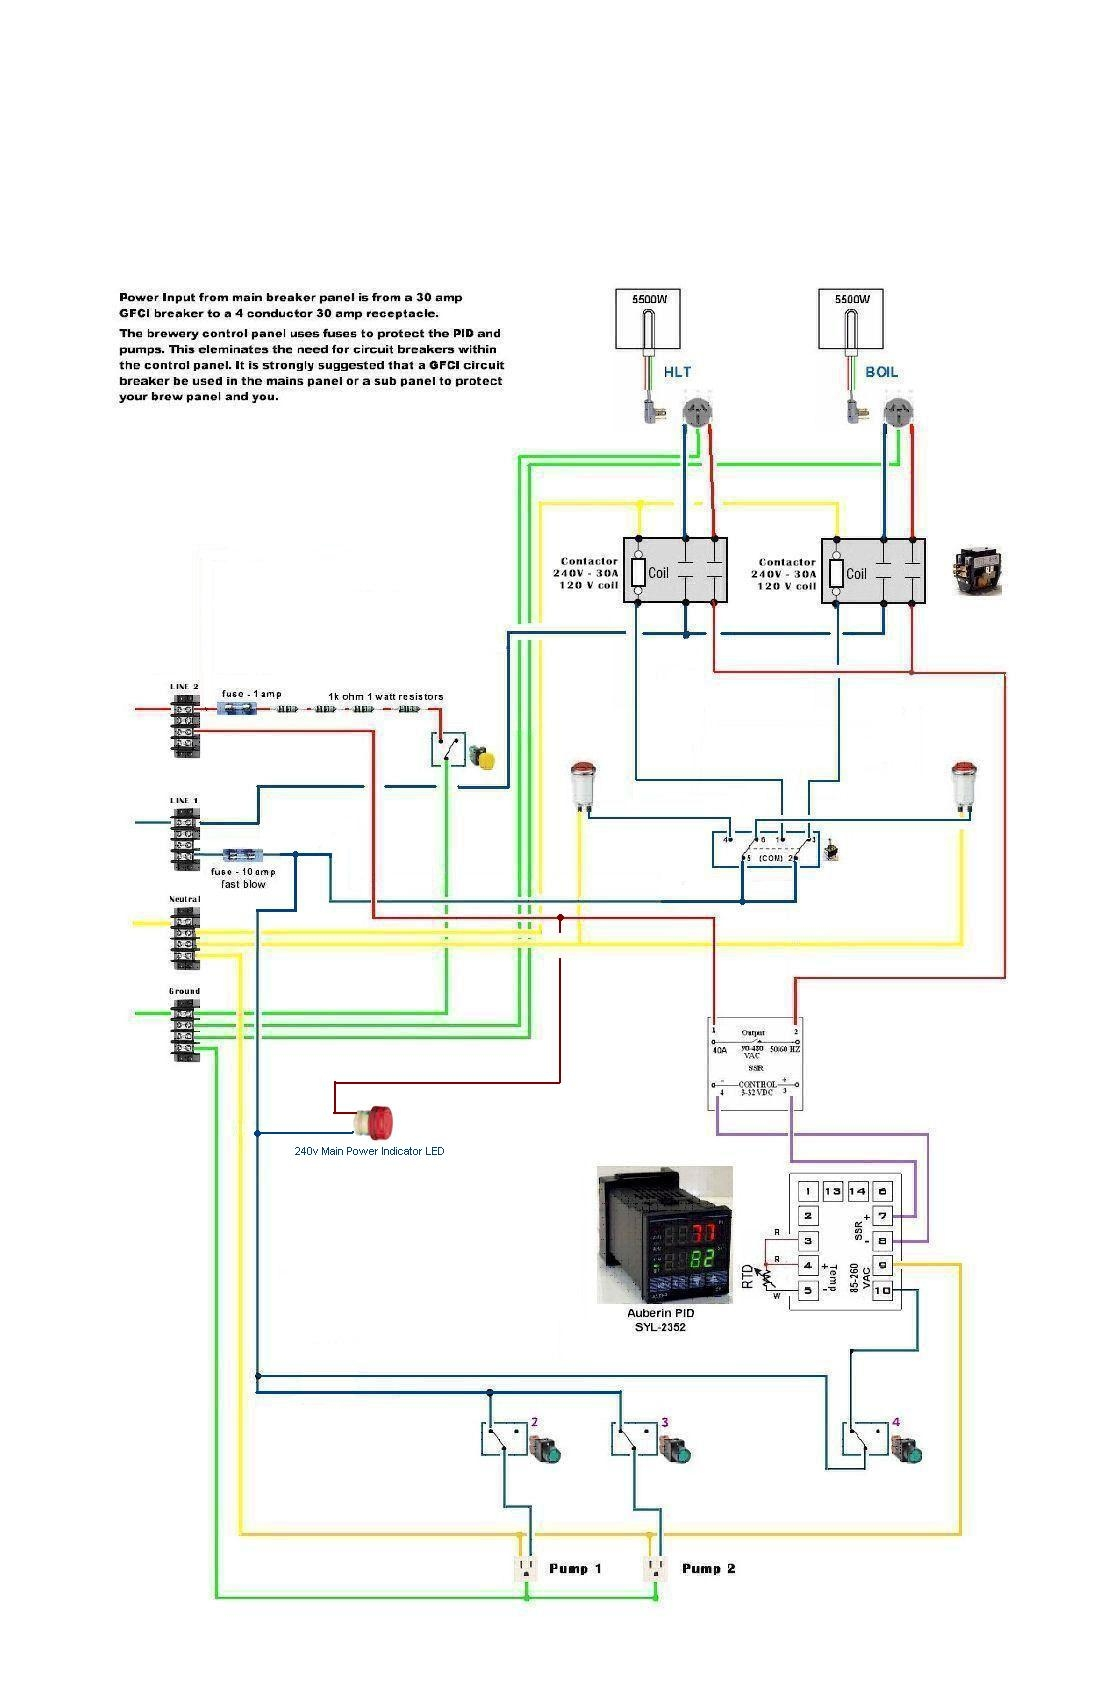 temperature controller wiring diagram Collection-my two 5500 watt element 1 pid and ssr build homebrewtalk rh homebrewtalk Toro ECx Sprinkler Wiring Diagram Board Camera Wiring Diagram 5-d